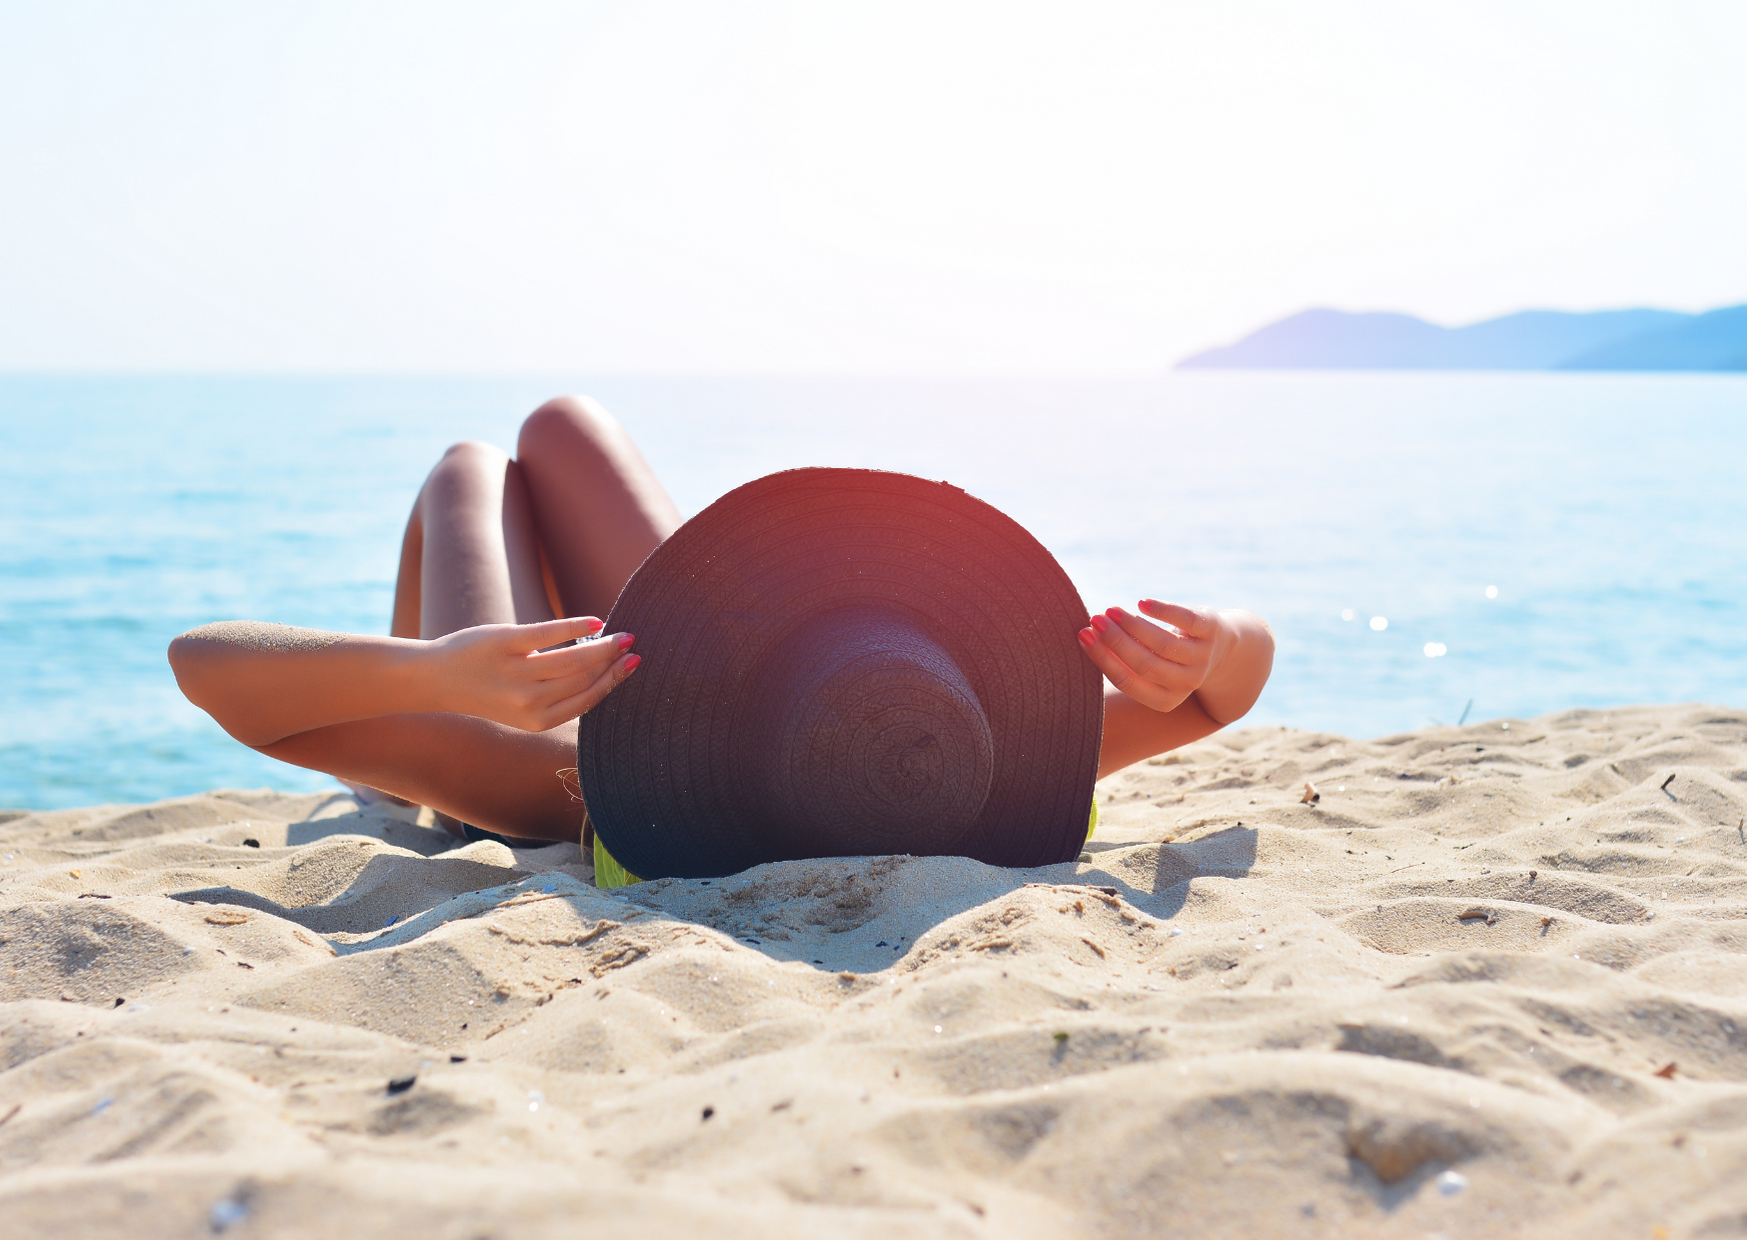 photo of woman lying in the sand under the sun